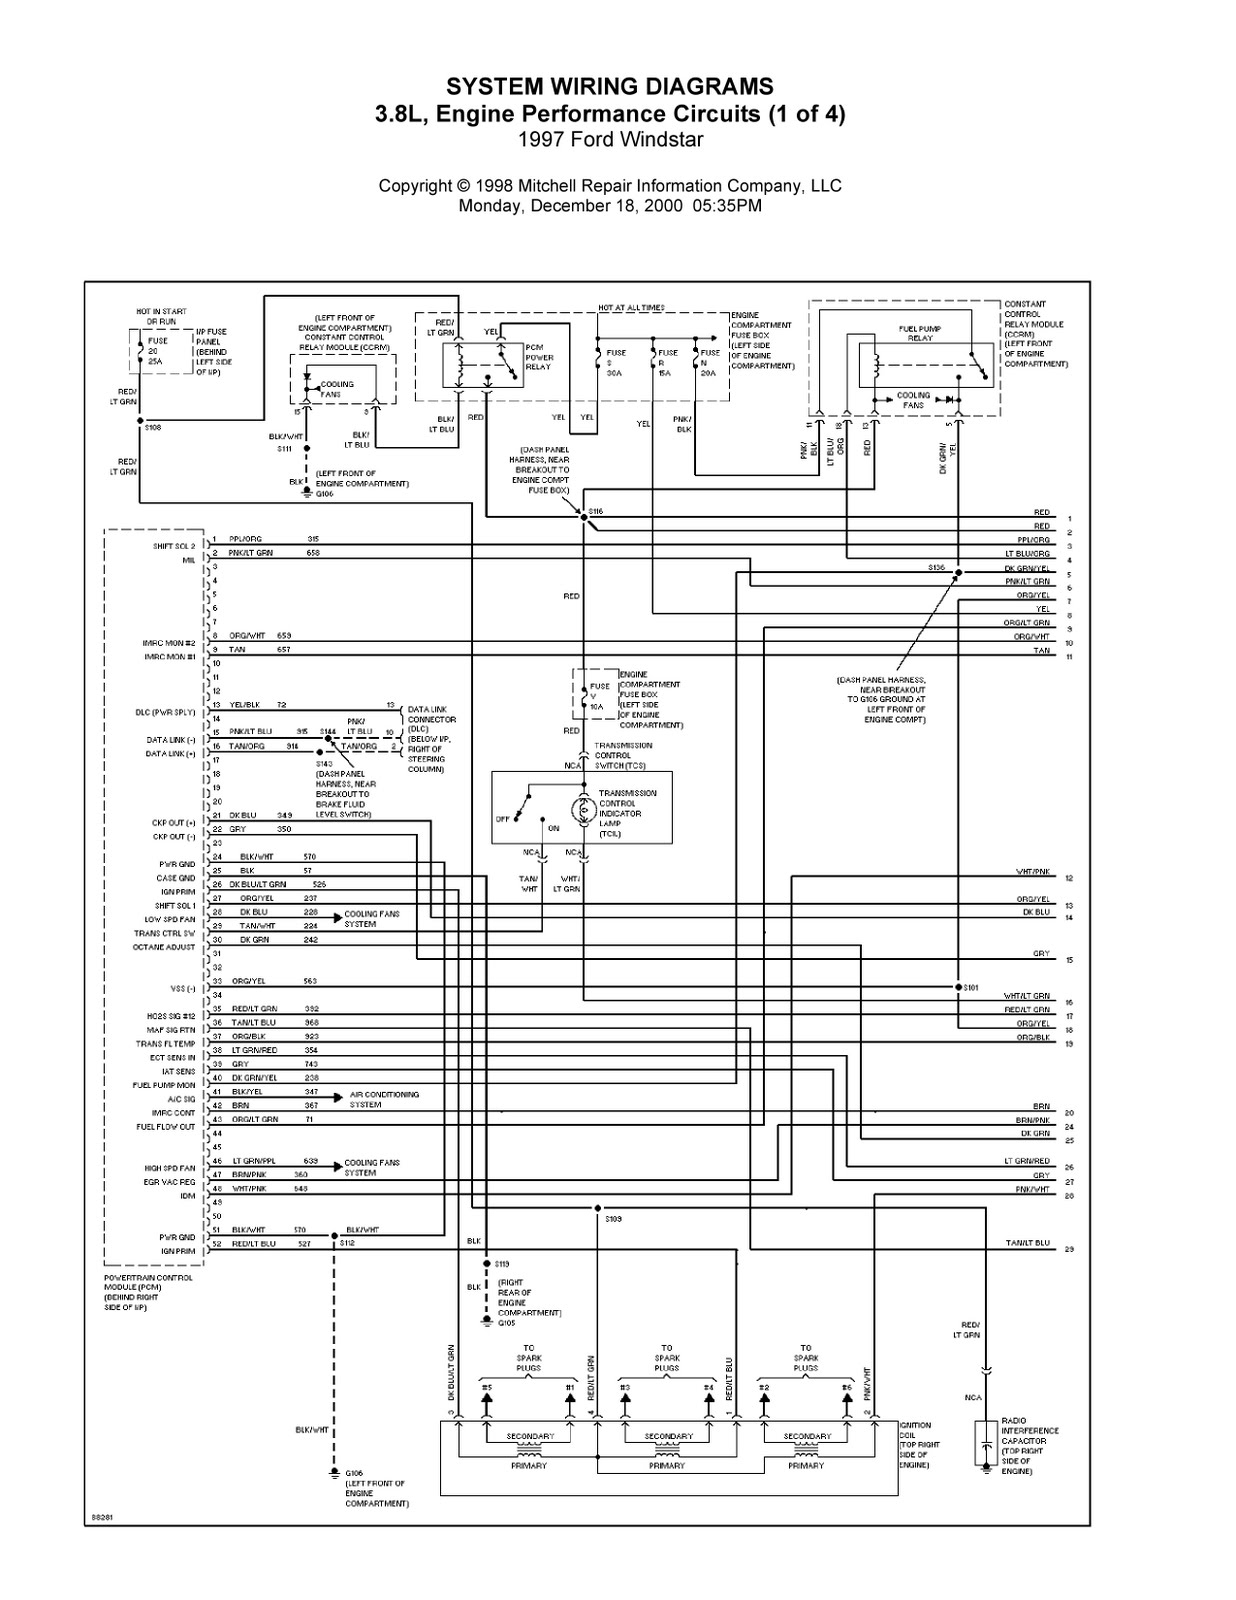 2000 Ford windstar stereo wiring diagram